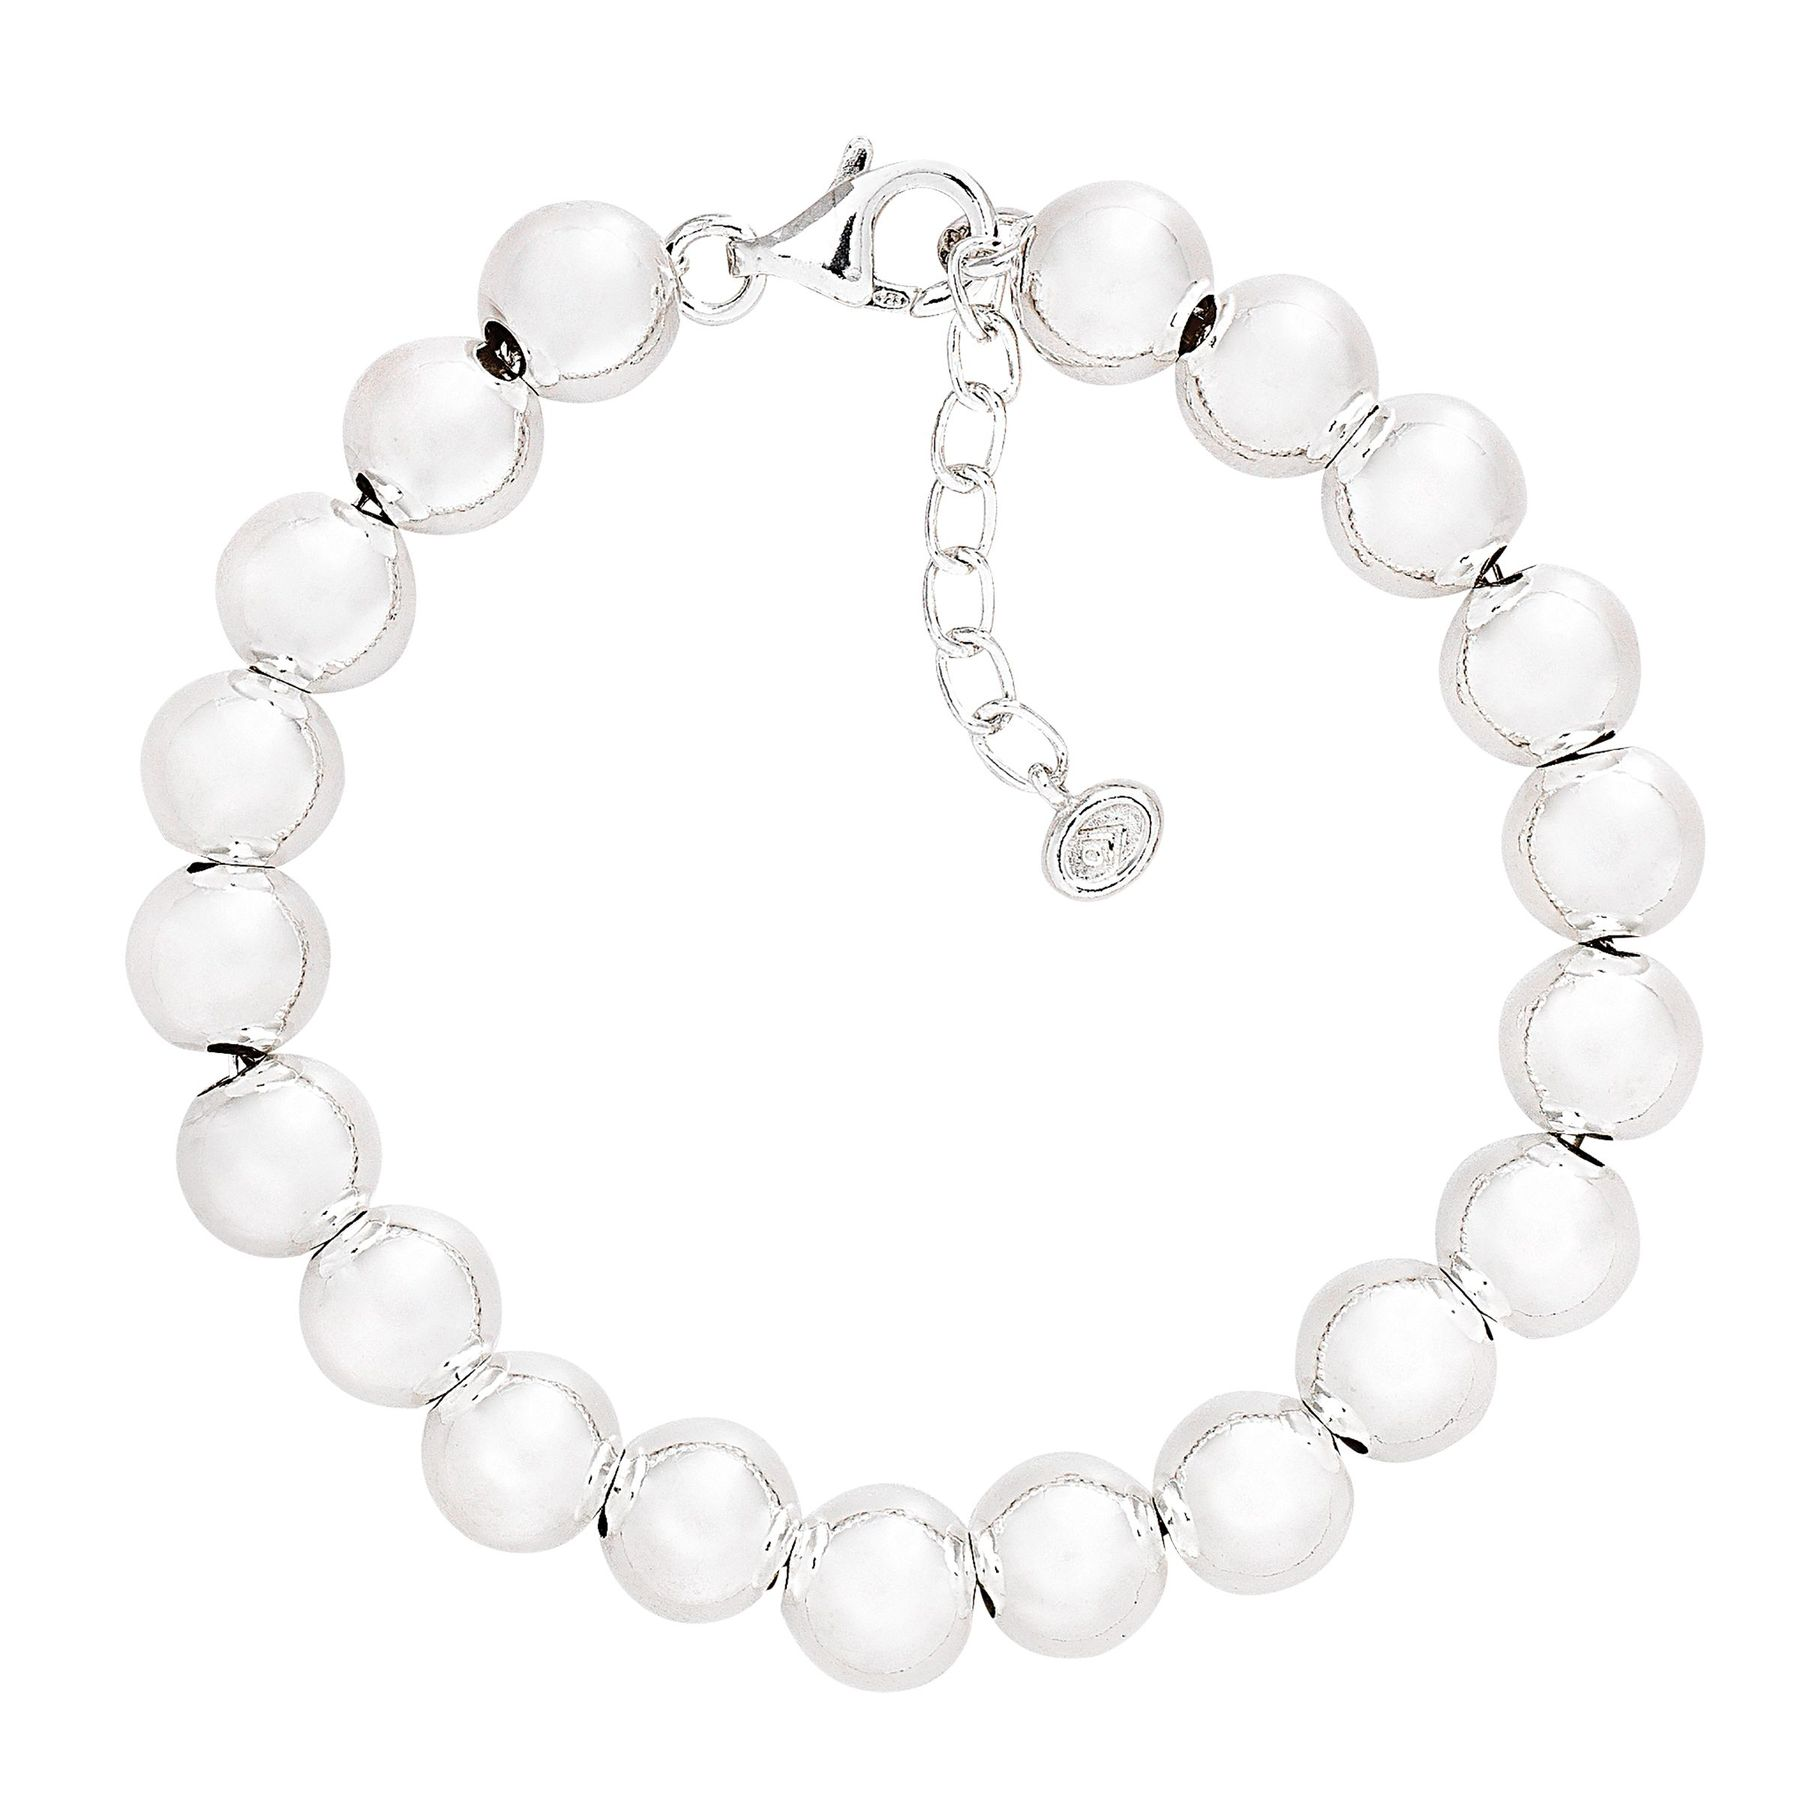 lorenzini en bracelets stone rigid and luca zirconias with silver bracelet